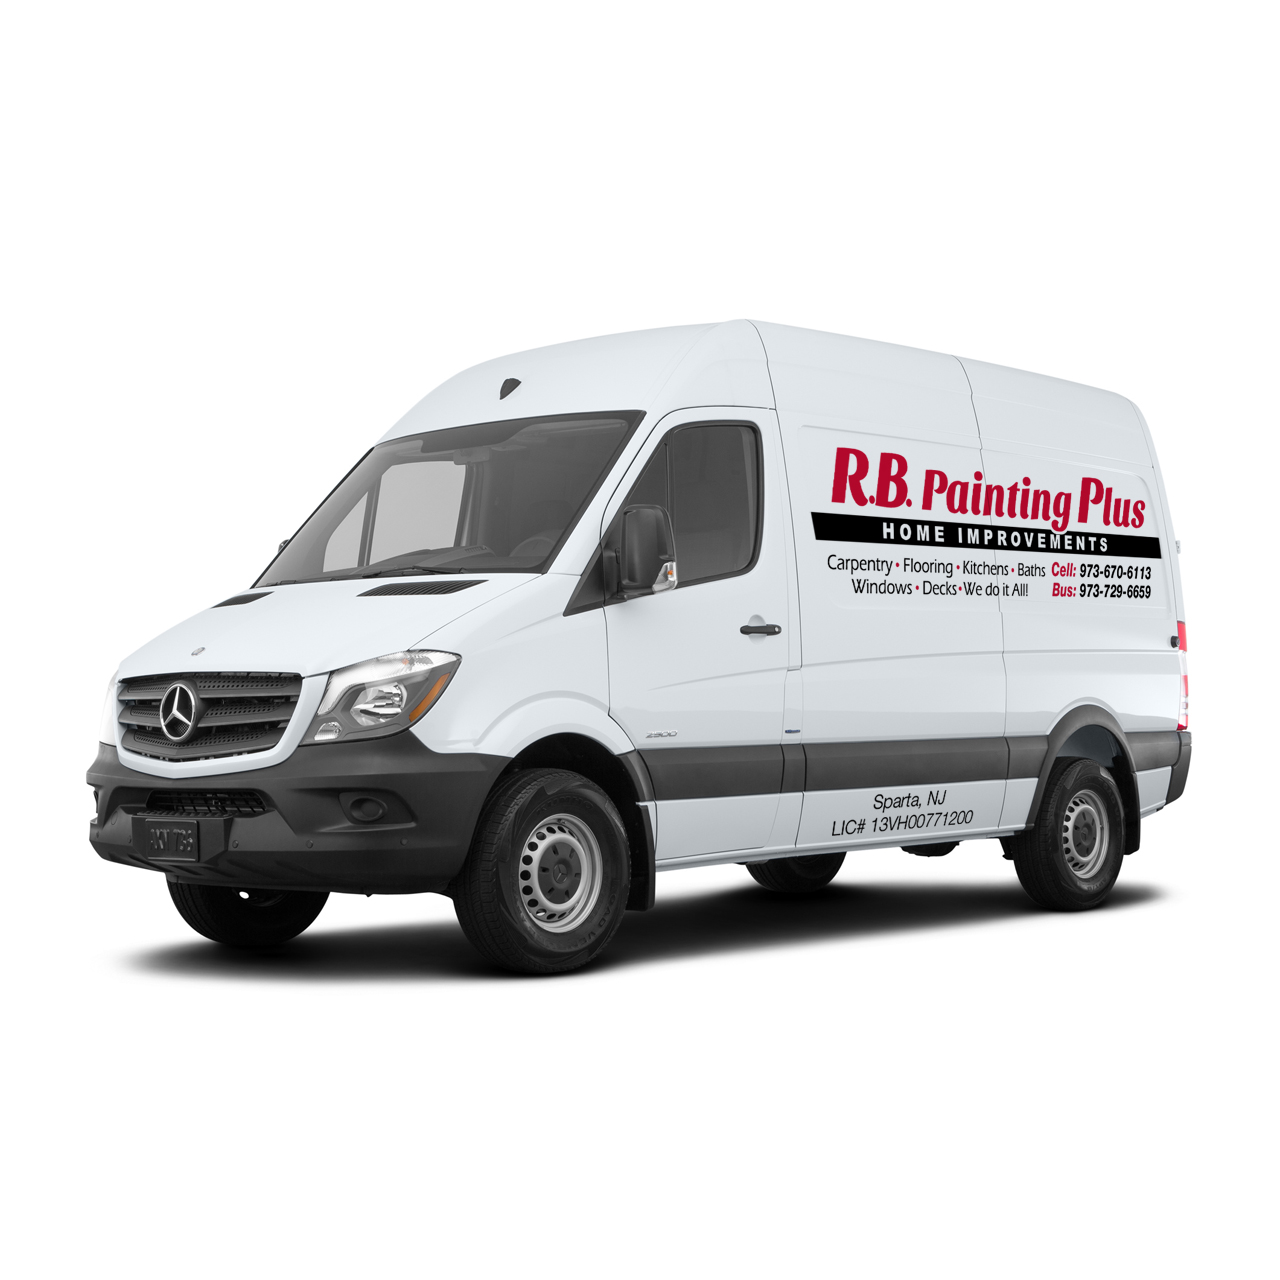 rb-painting-plus-truck